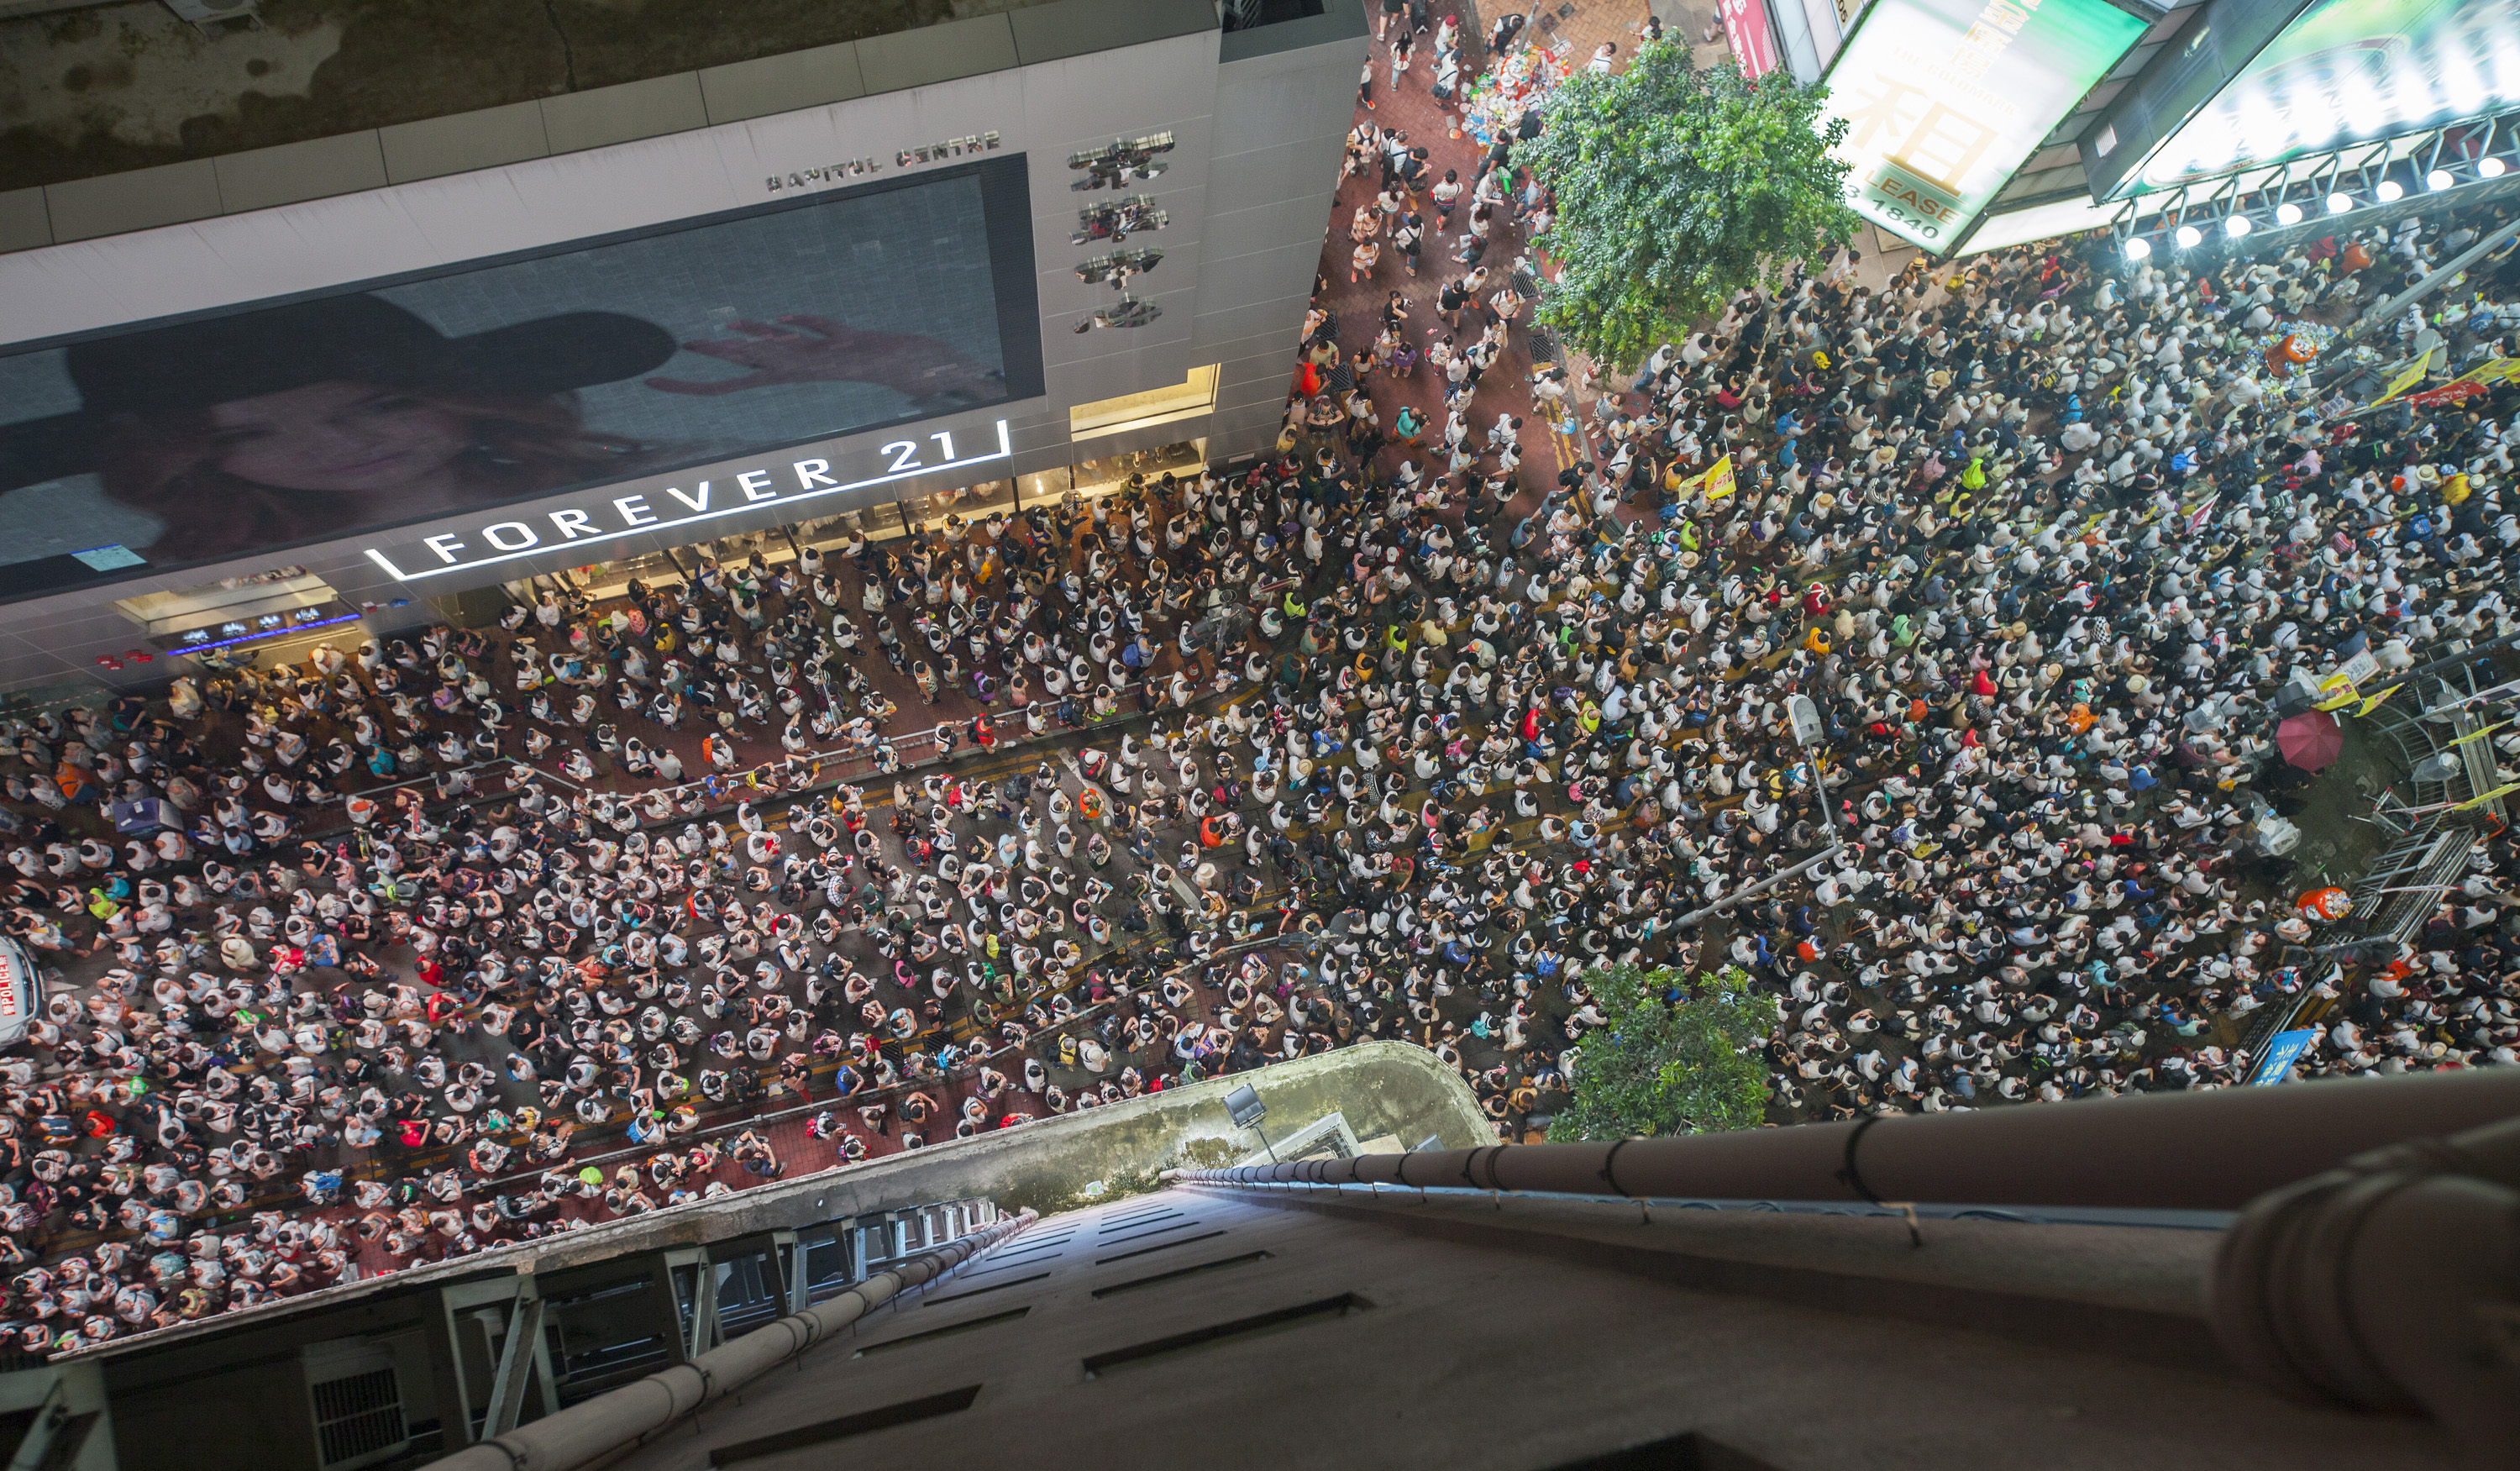 Hong Kong - More Than Half Million Protest To Demand Democracy In HK    					    				More of today's headlines